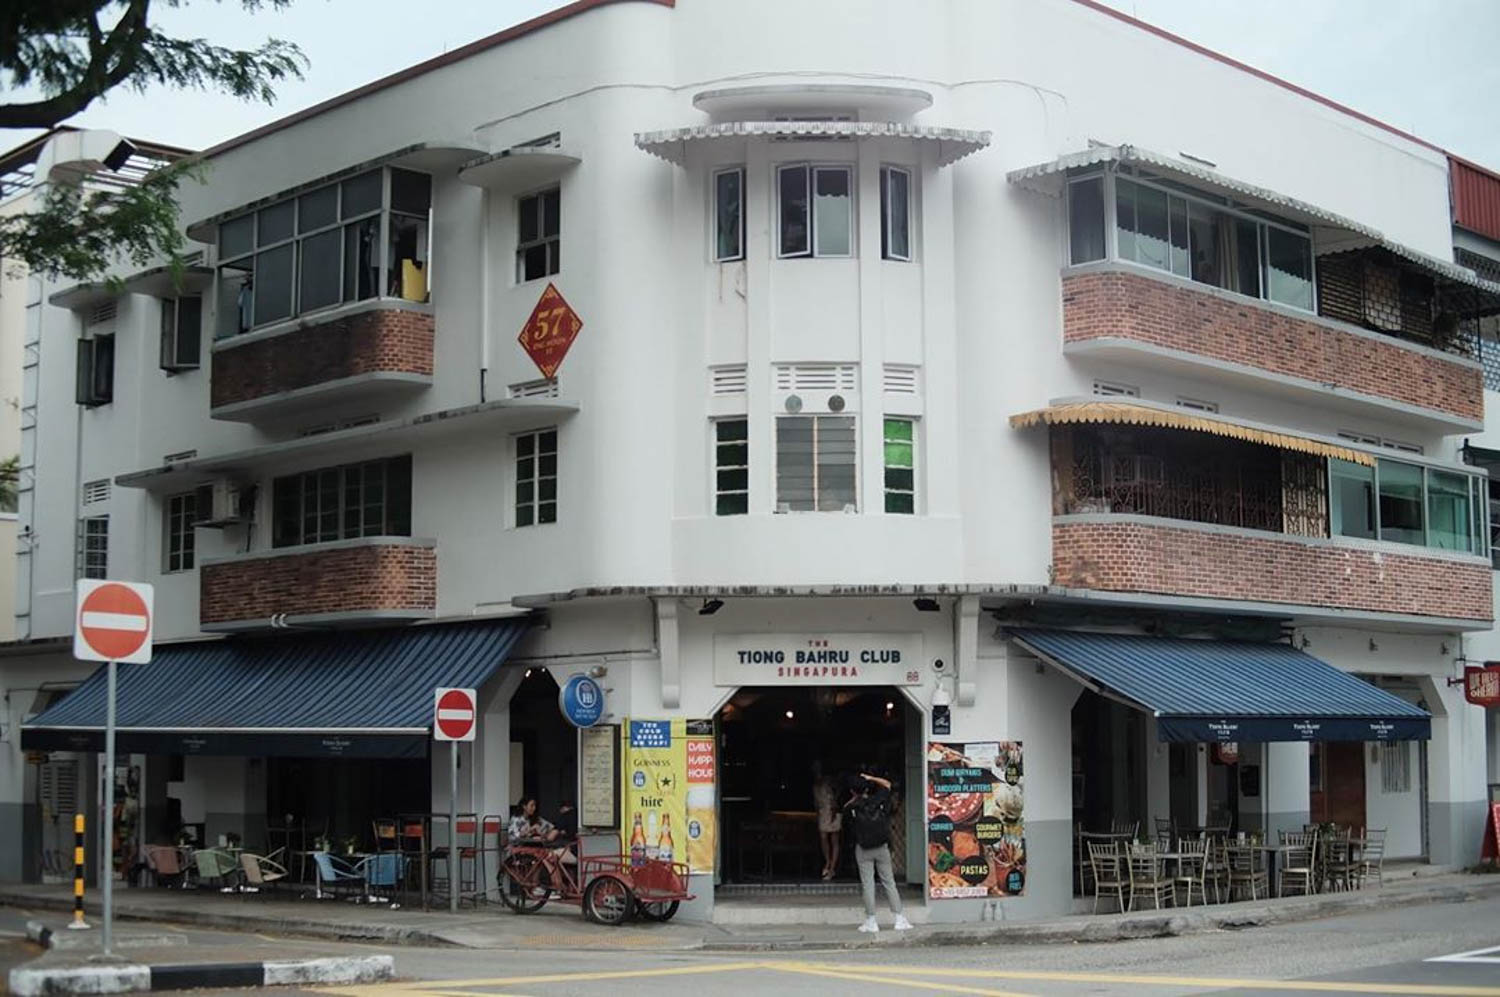 Tiong Bahru History - International Recognition